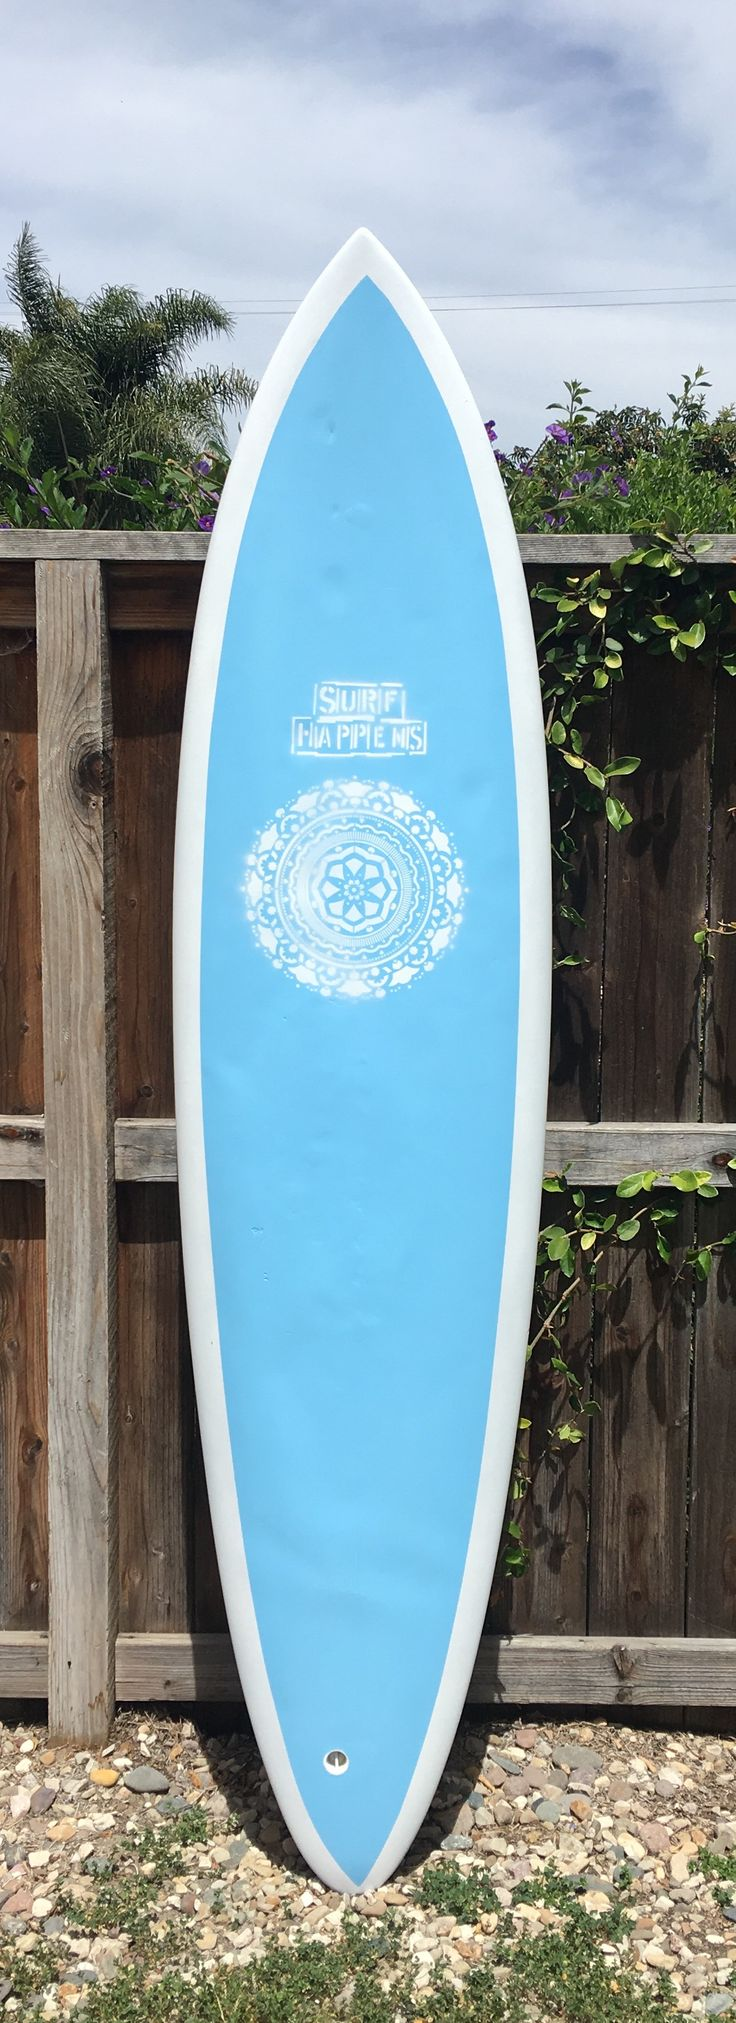 Surf Happens ! Decorative painted used surfboard resto by Chubbysurf.com !